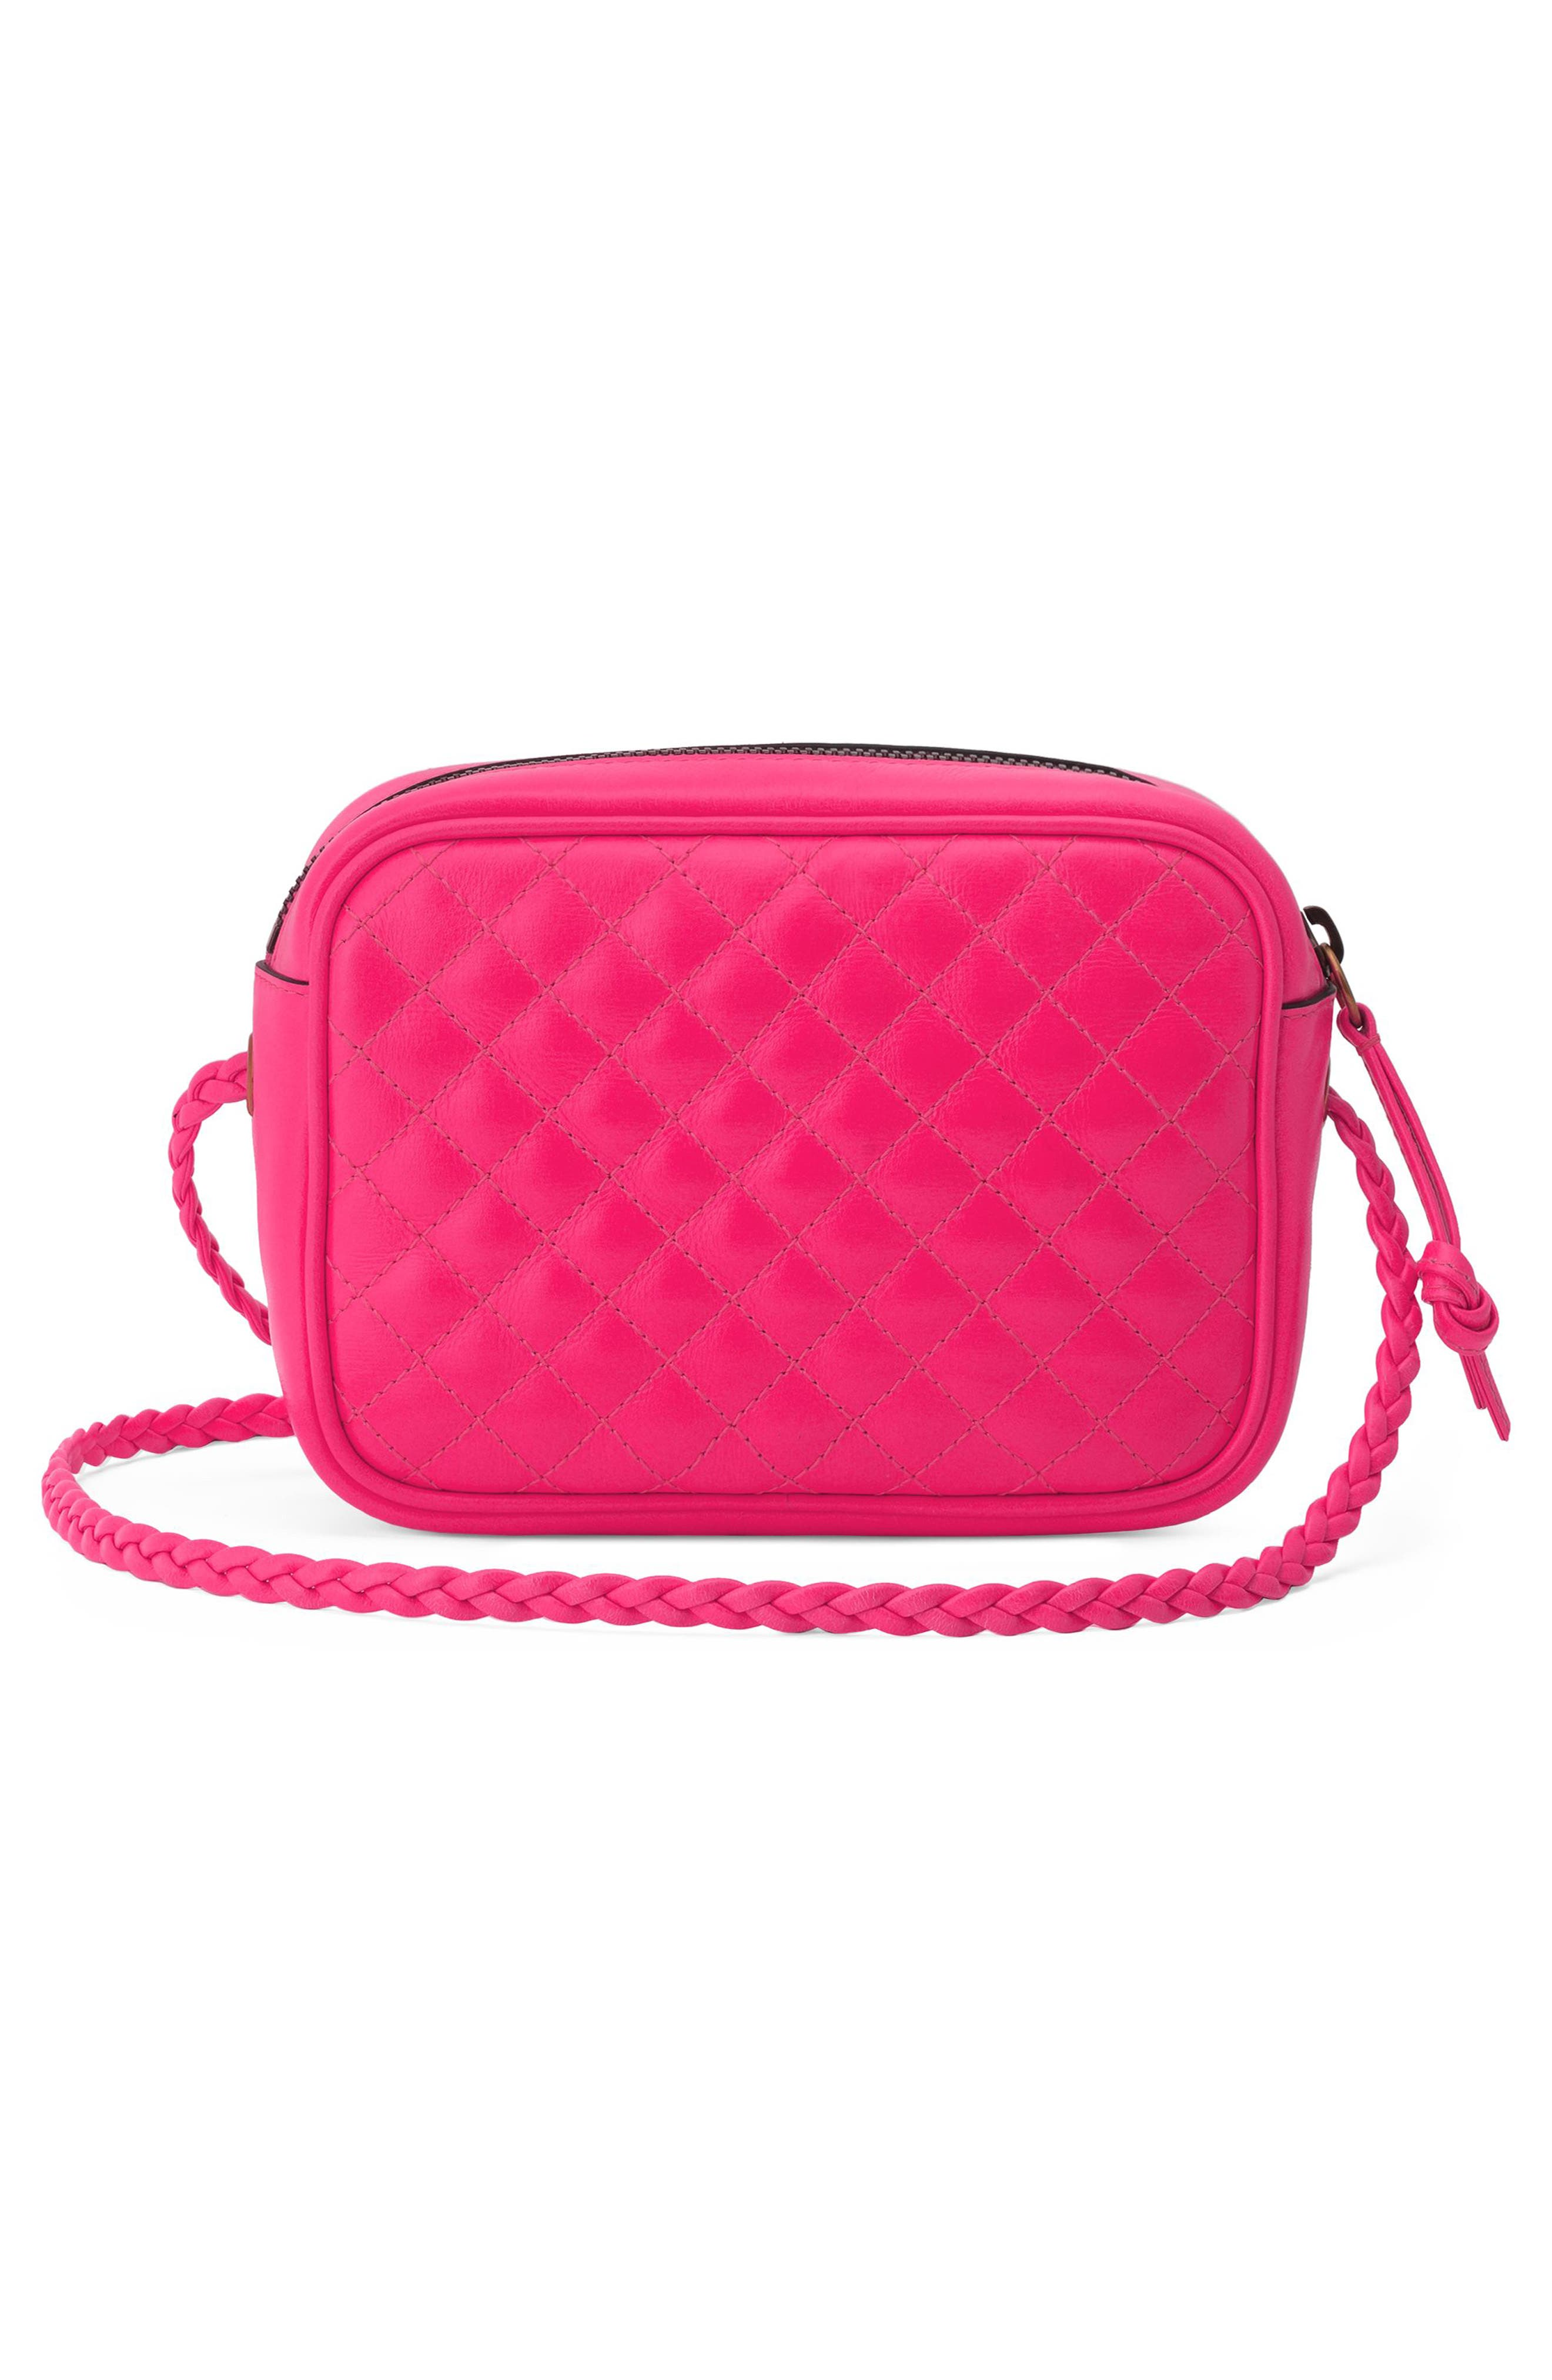 Small Quilted Leather Camera Bag,                             Alternate thumbnail 2, color,                             FUXIA FLOURESCENT